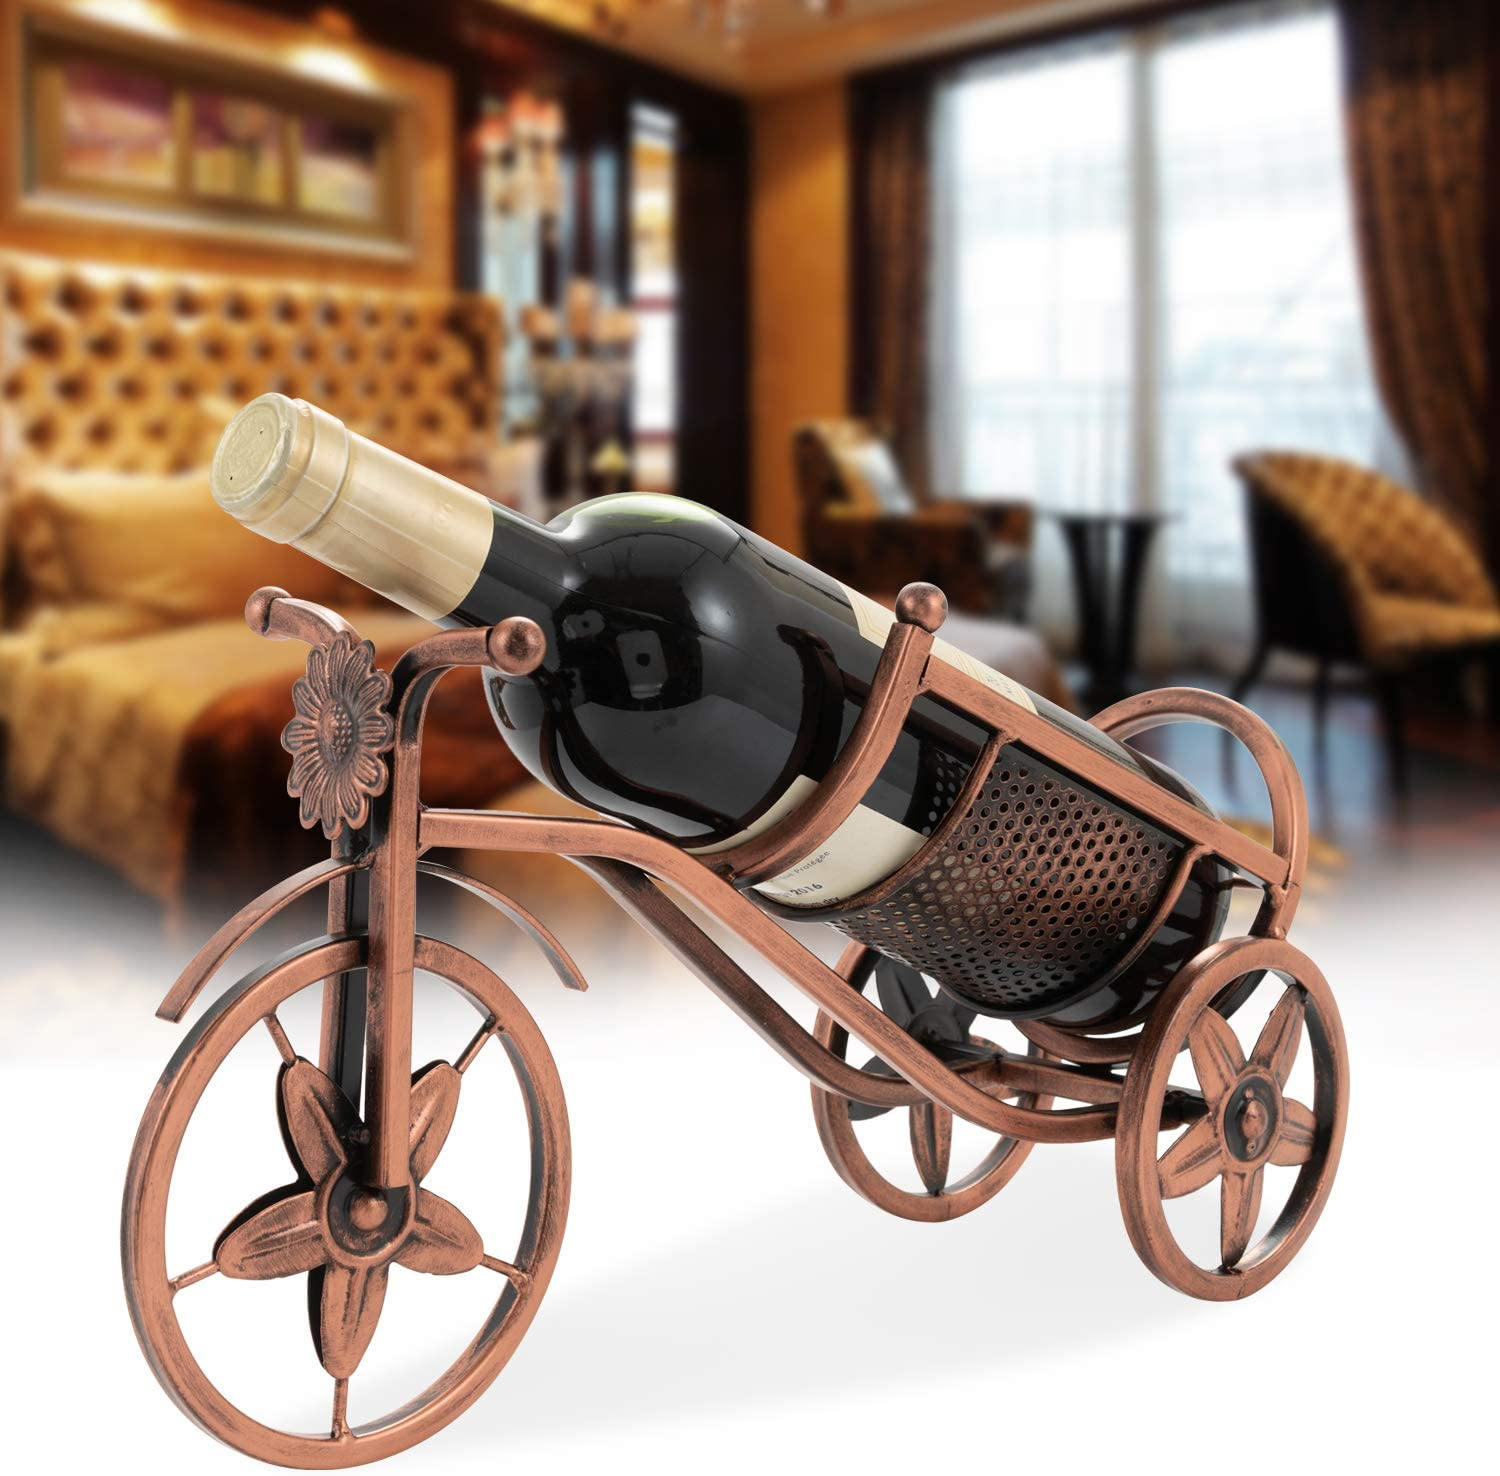 SOPRETY Creative Wine Rack Wine Holder for Single Bottle Bike Shaped with Flower, Wine Organizer Stand Countertop Tabletop Display for Home and Office, Thickening Stainless Steel, Retro Copper